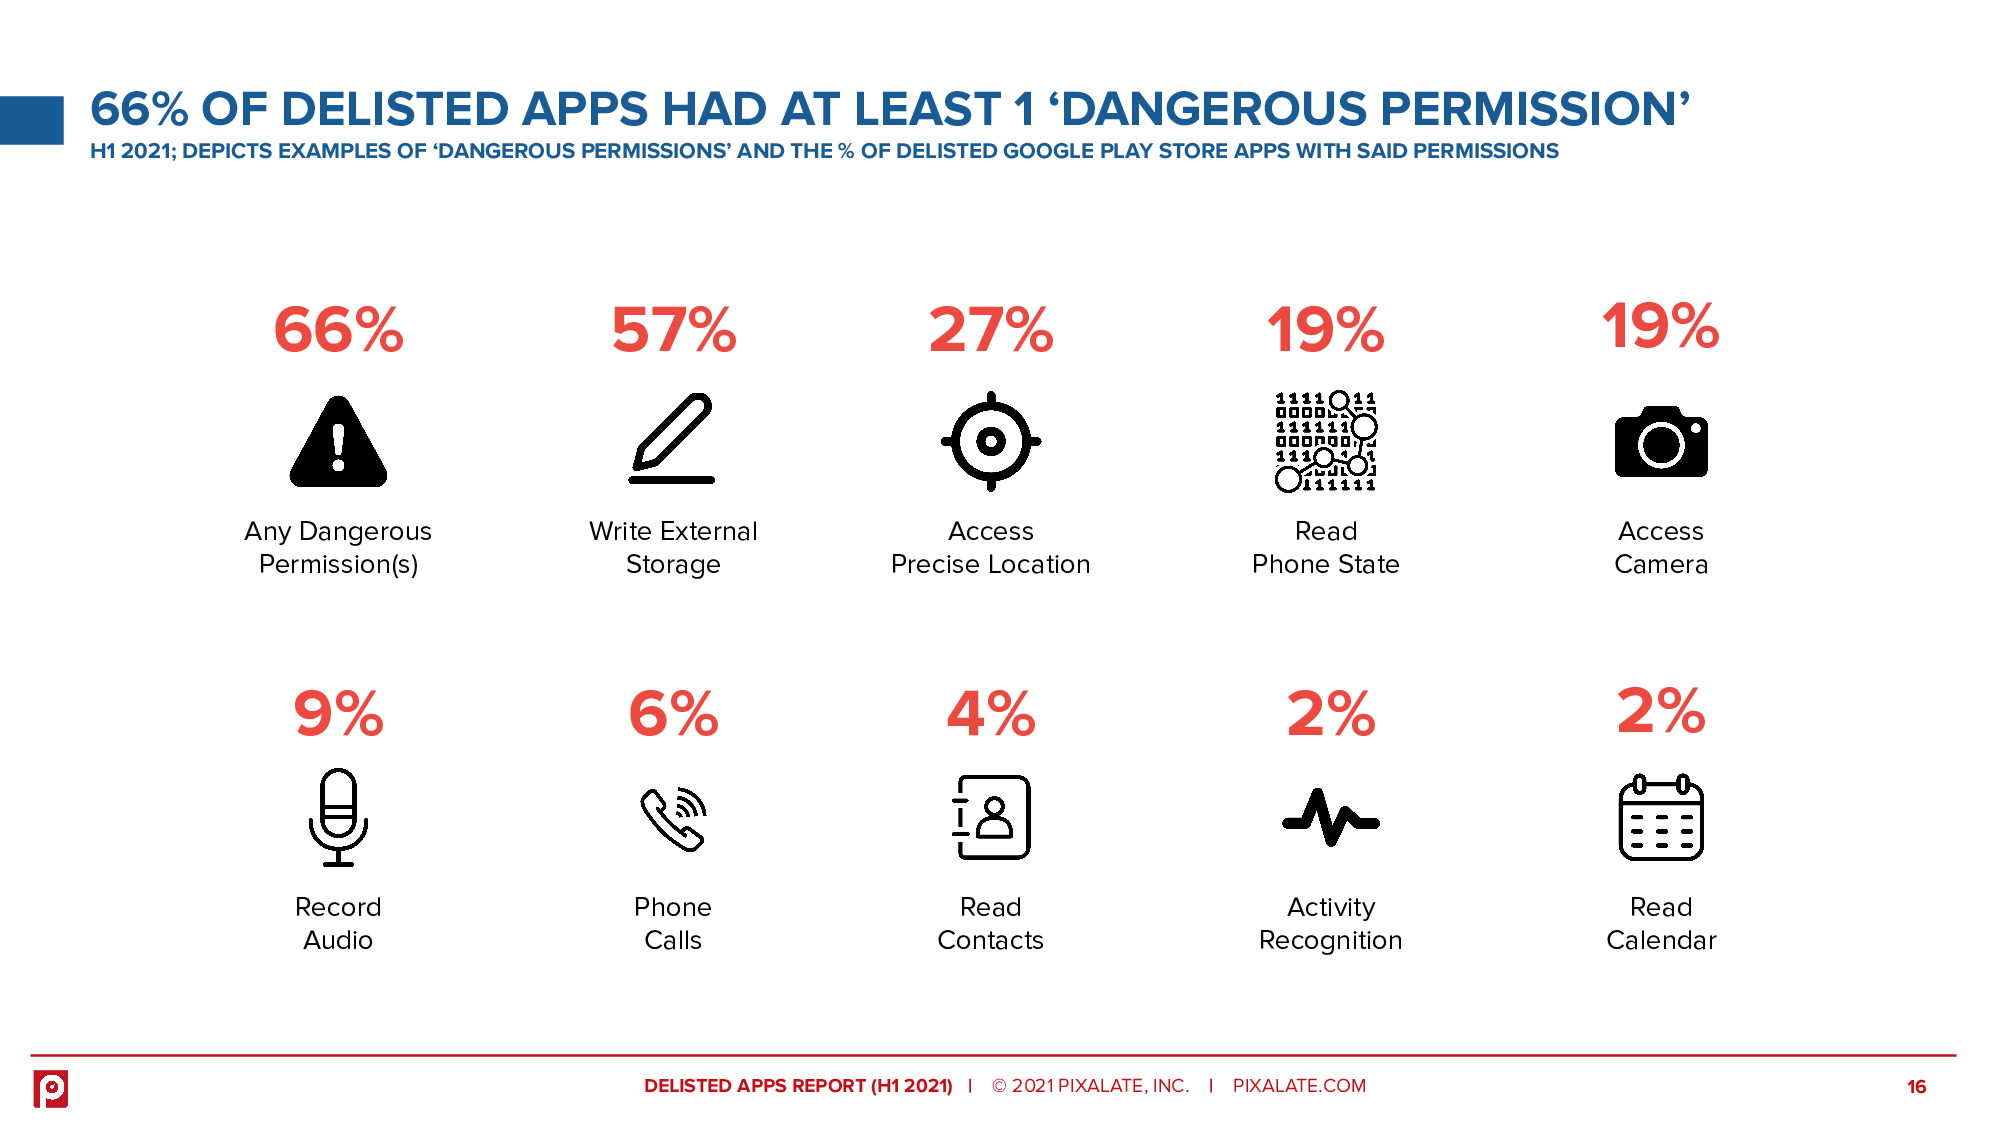 66% of Delisted Apps Had at Least 1 'dangerous Permission'